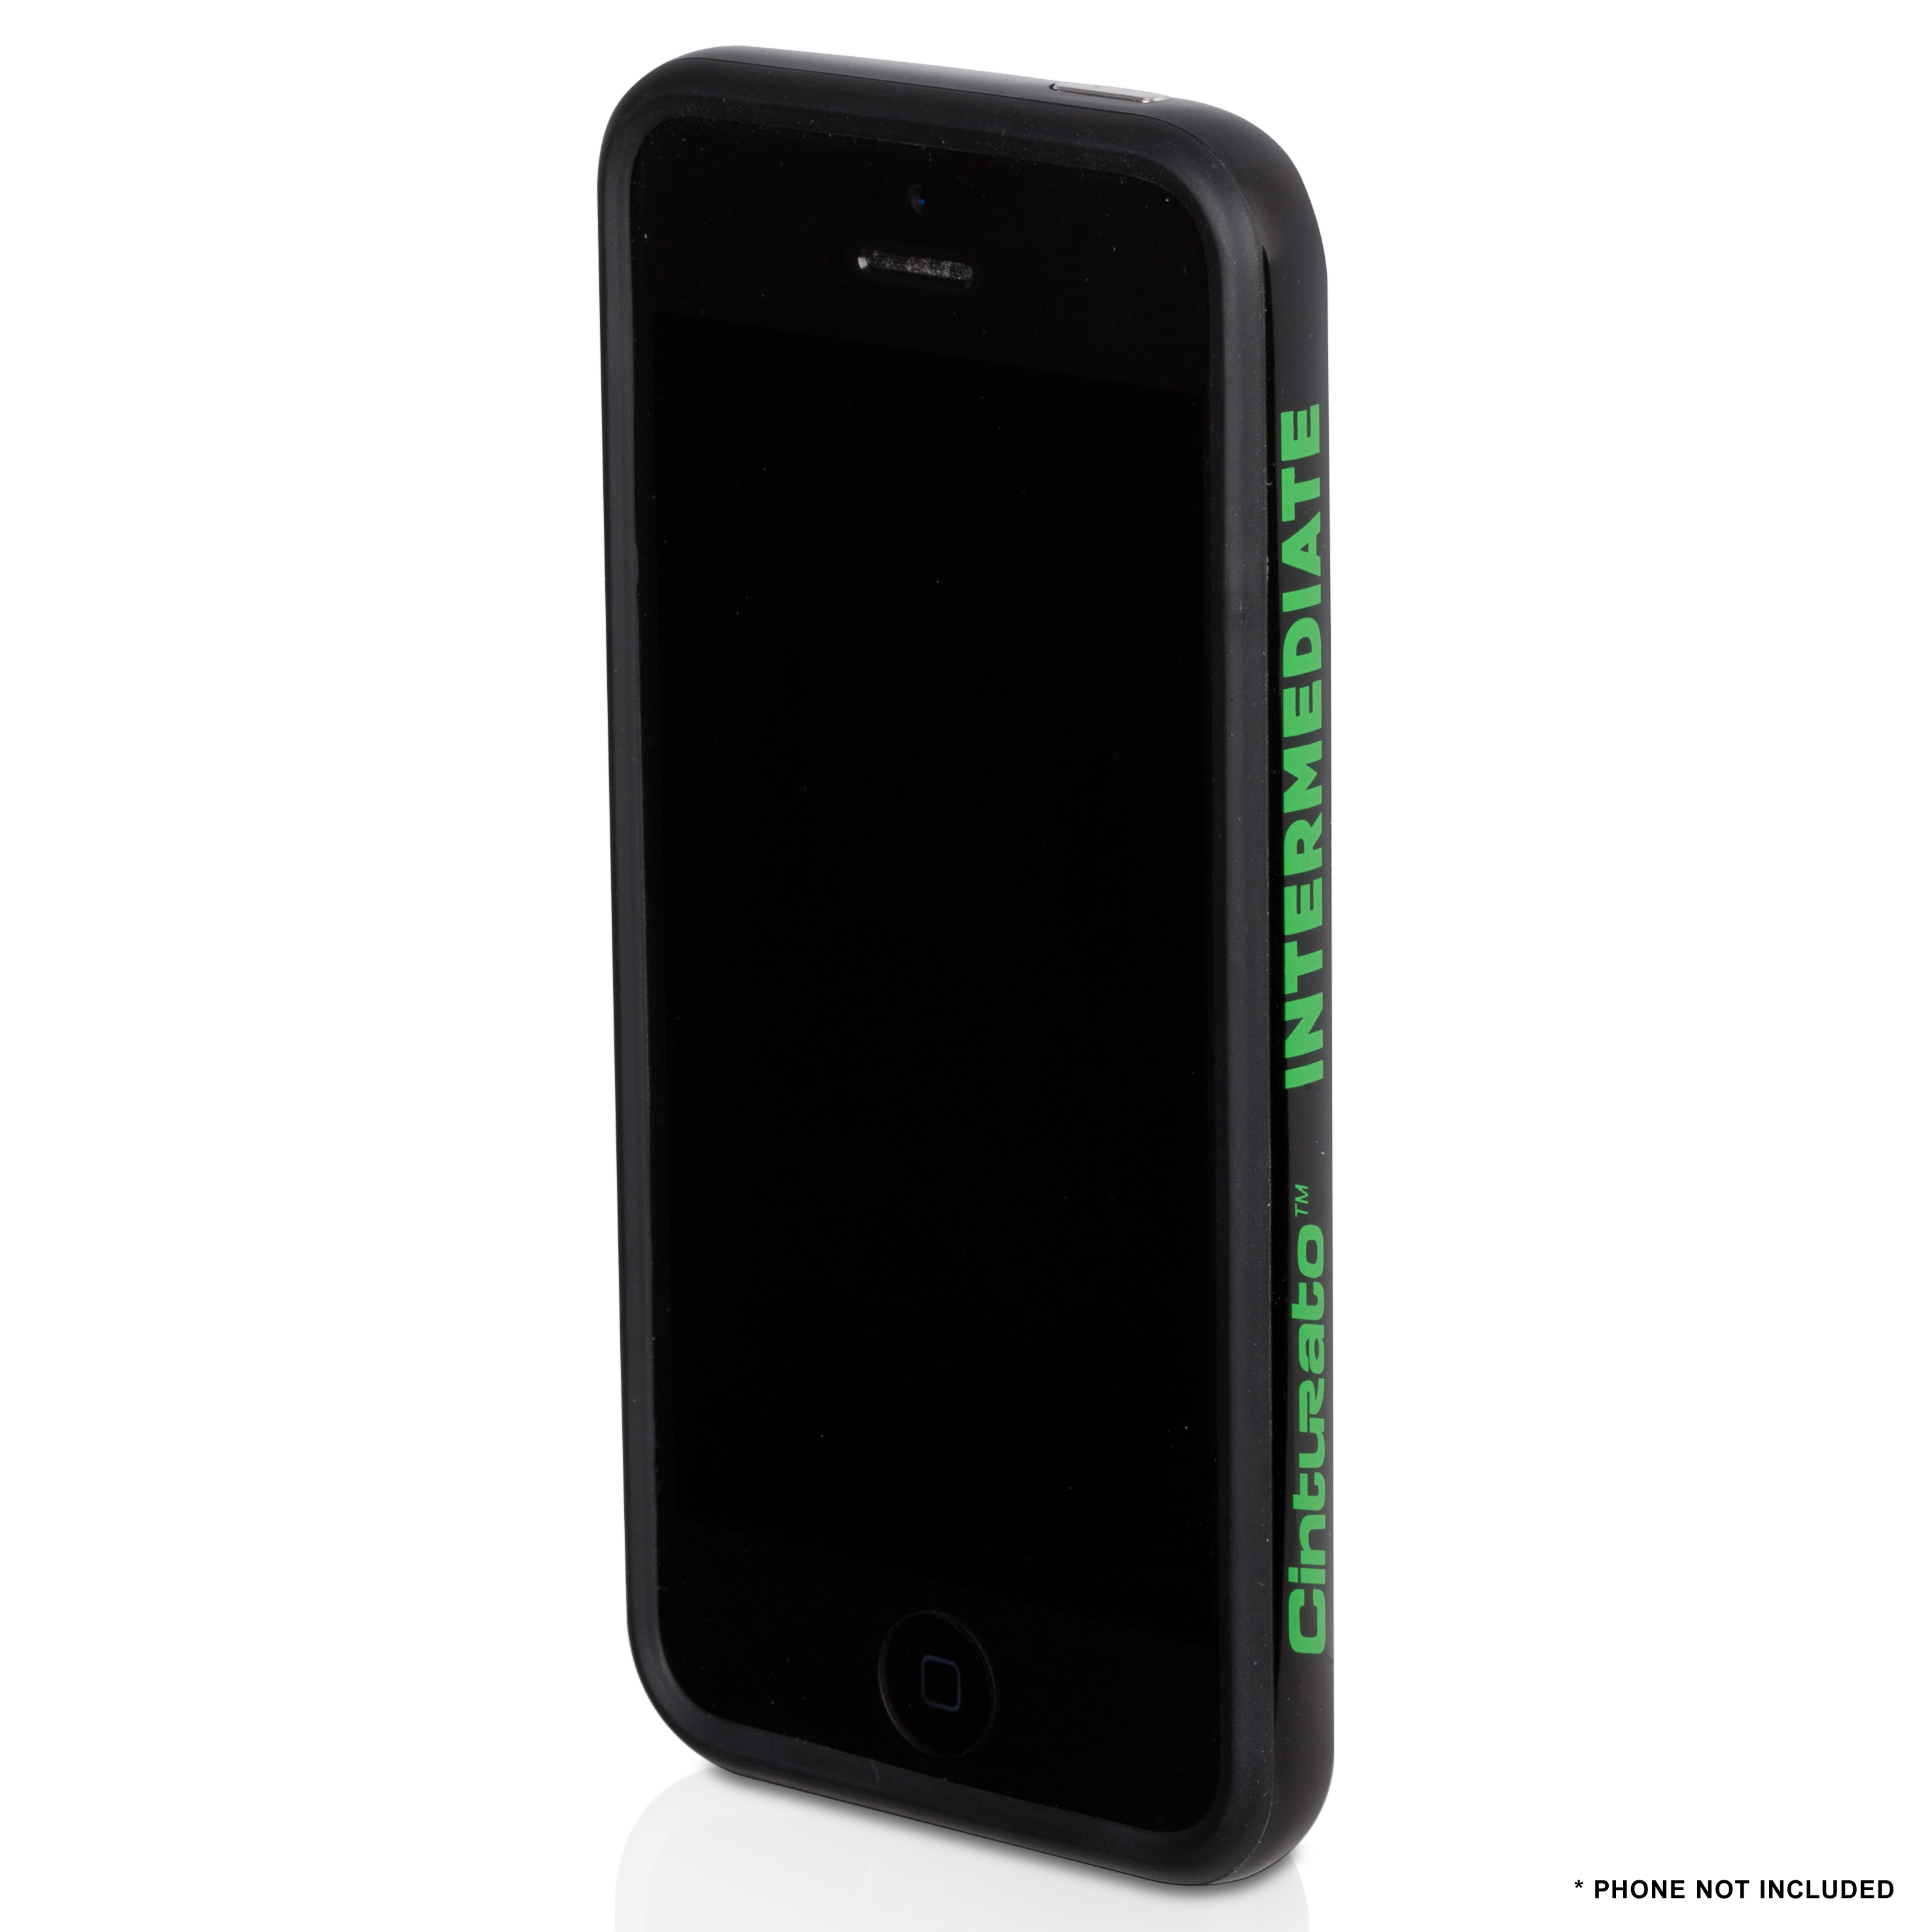 Pirelli Cinturato Intermediate iPhone 5 Bumper